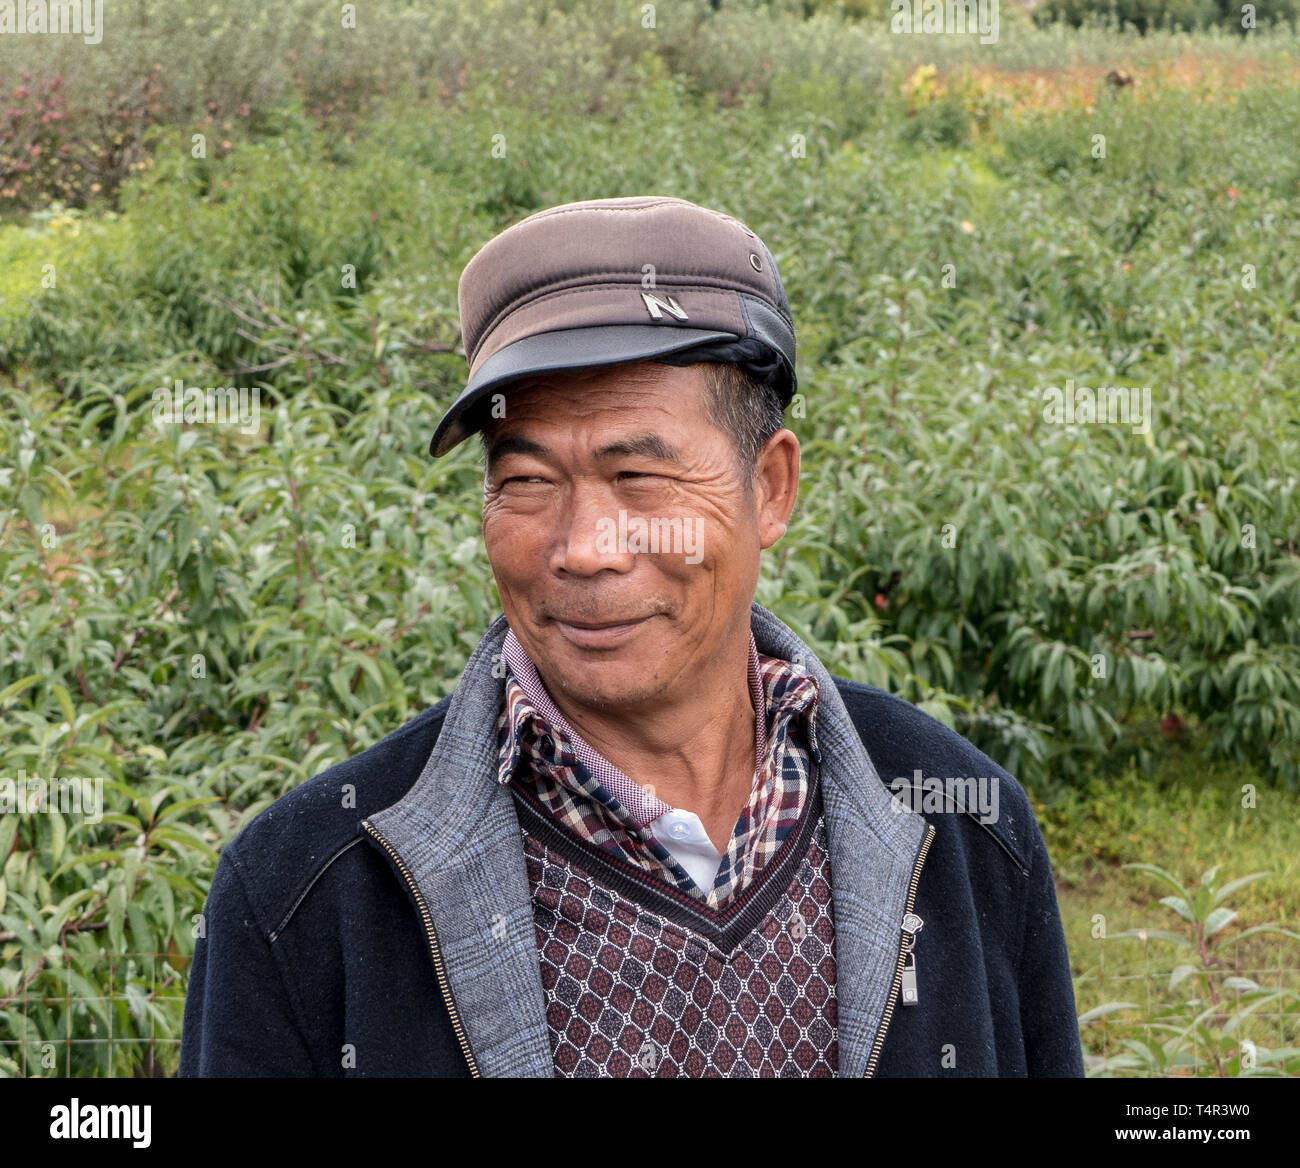 Portrait of a Chinese man wearing a Mao cap, Lijiang, Yunnan Province, People's Republic of China - Stock Image